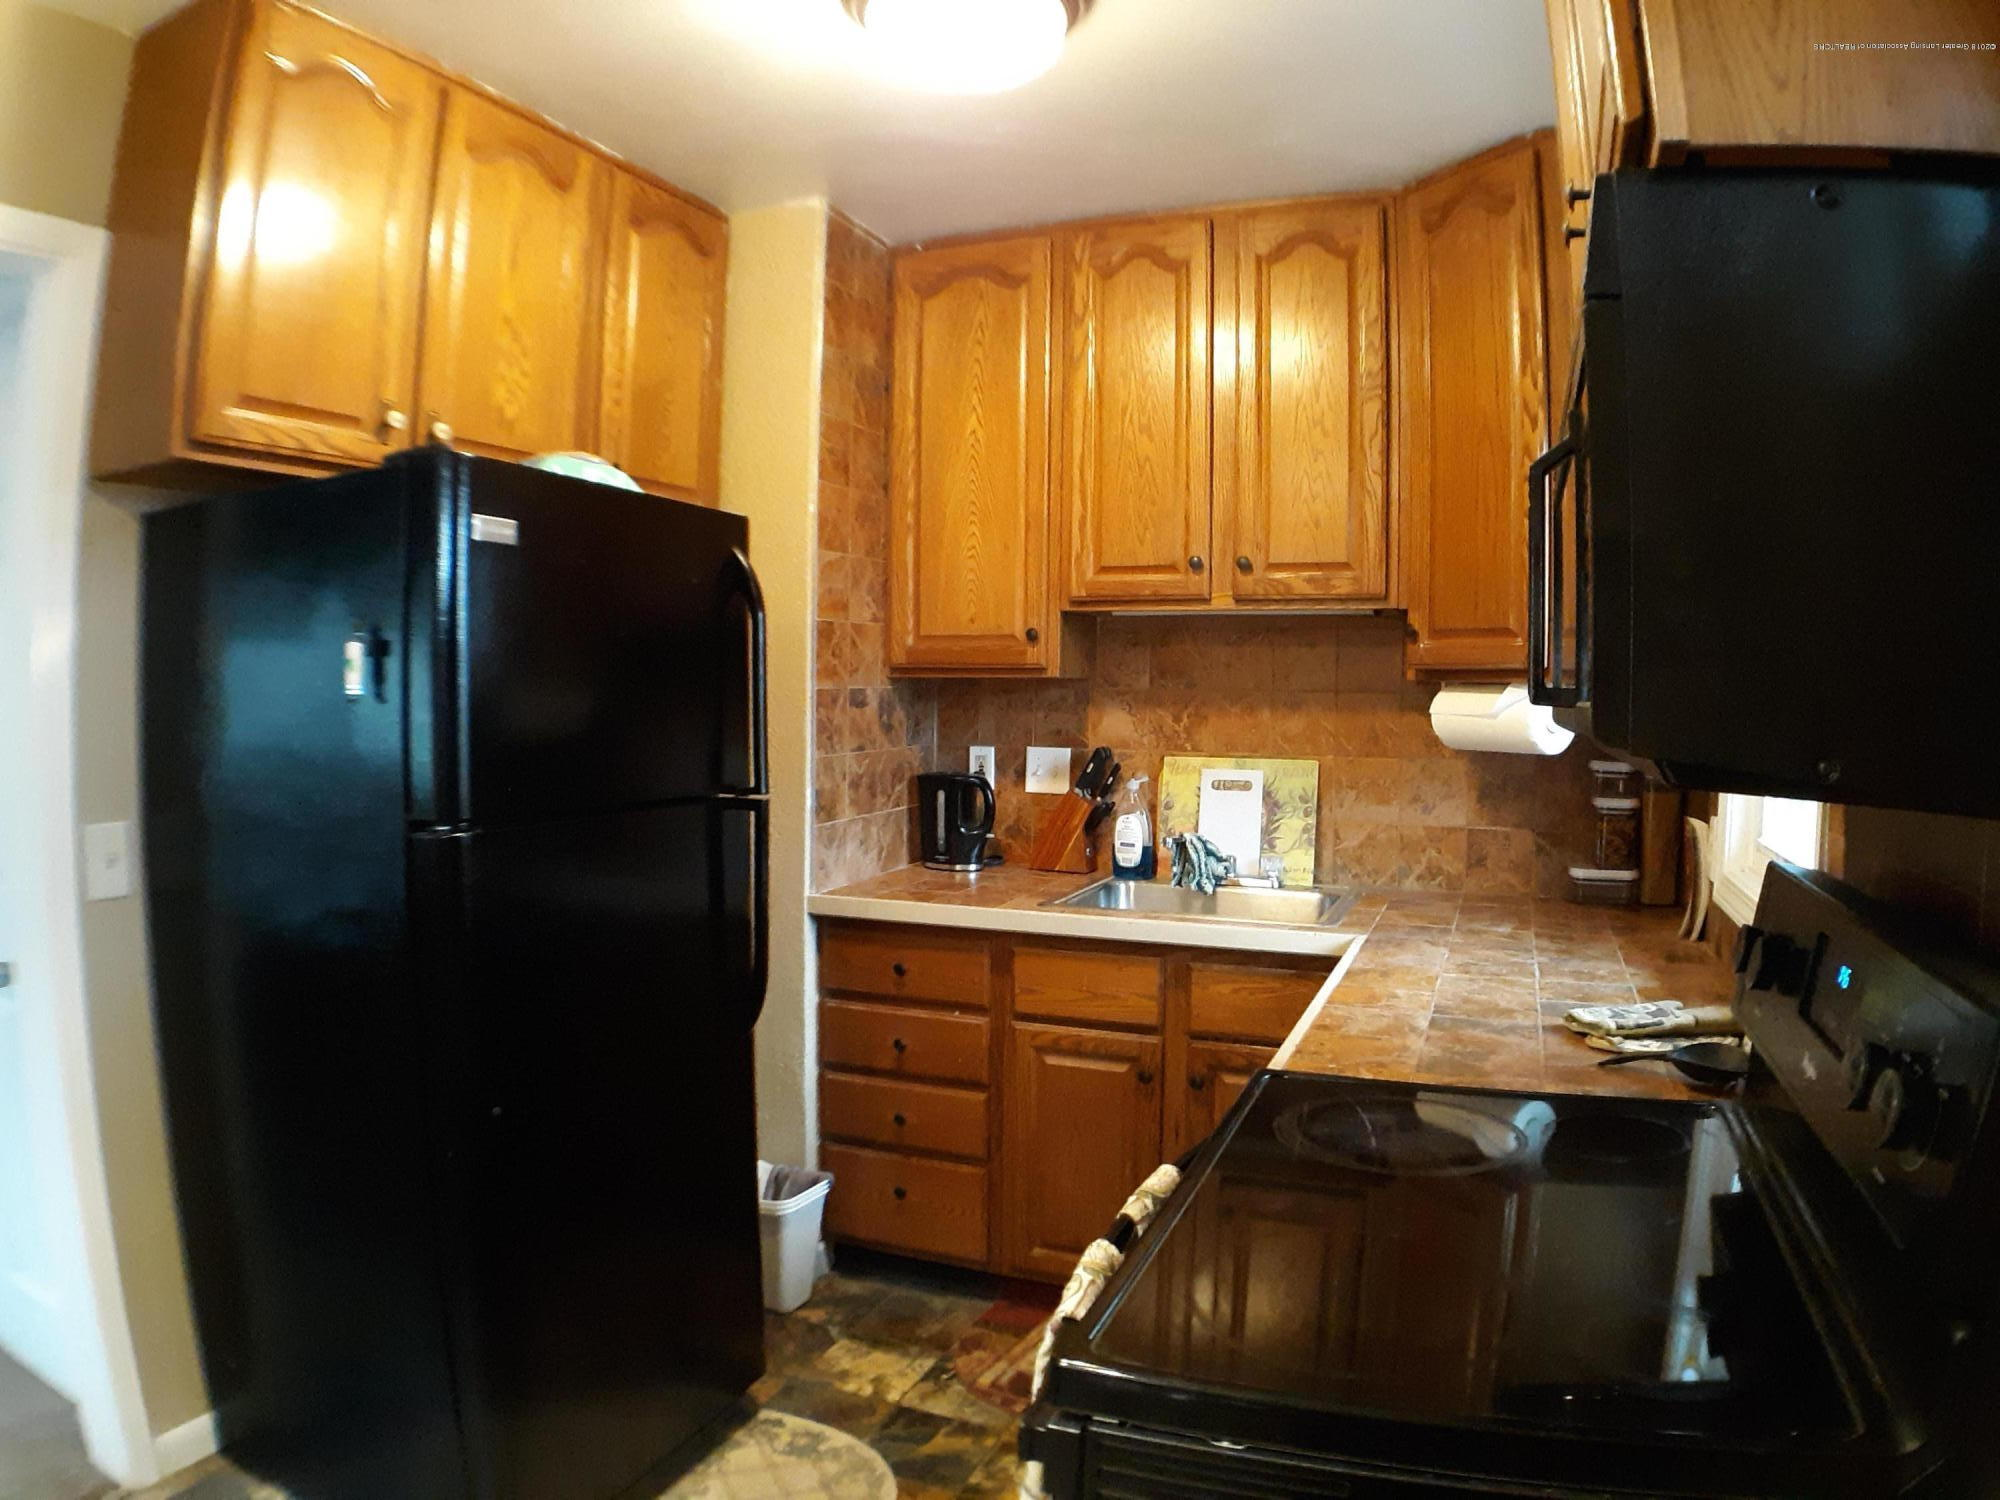 1718 Victor Ave - 1718 kitchen 2 - 3